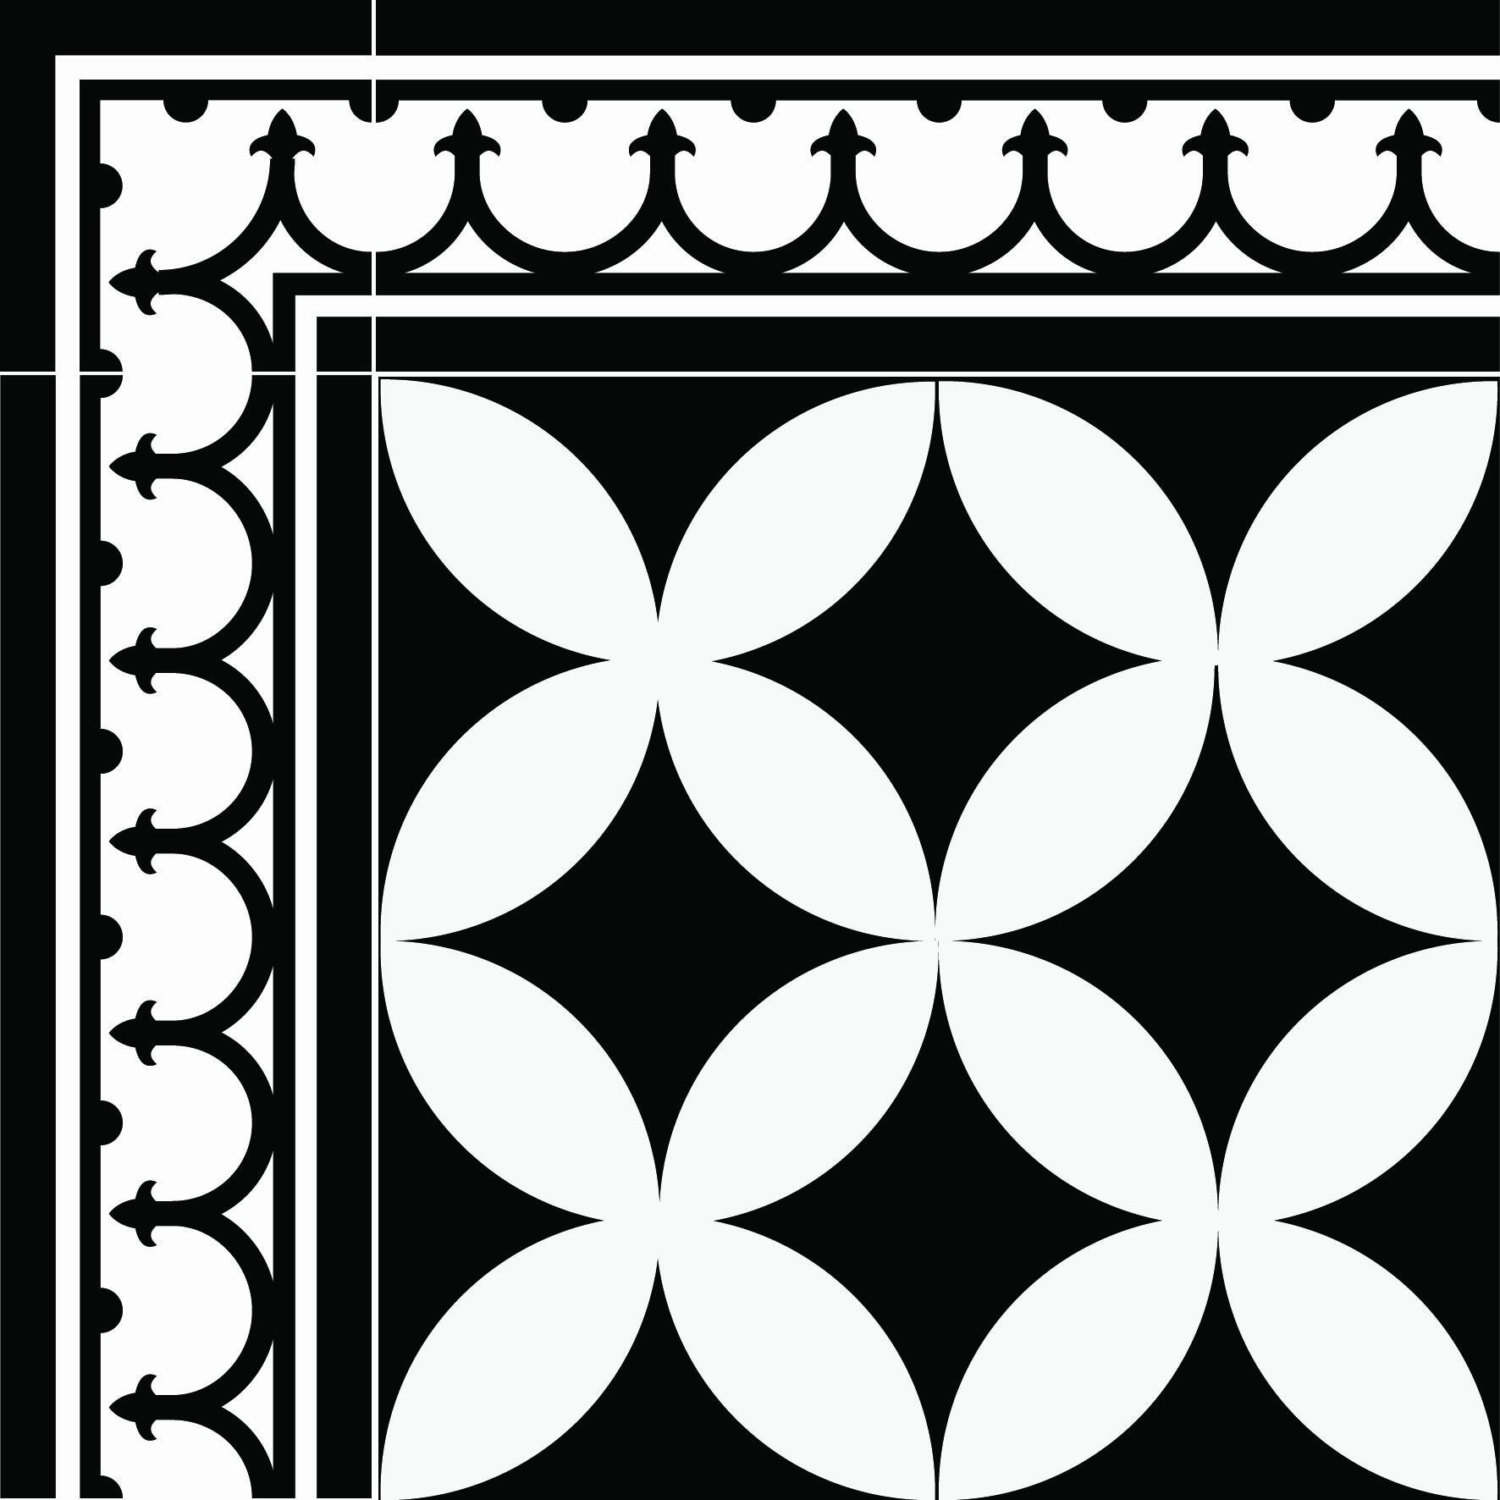 traditional-tiles-floor-tiles-floor-vinyl-tile-stickers-tile-decals Tile Decals For Bathroom on decals for furniture, decals for glass, decals for toilet seats, decals for appliances, decals for windows, decals for home, decals for doors, decals for mirrors, decals for sinks, decals for stone, decals for bathtubs, decals for floor, decals for wood, decals for showers, decals for ceramic tile backsplash, decals for porcelain, decals for walls, decals for painting, decals for concrete, decals for kitchen,